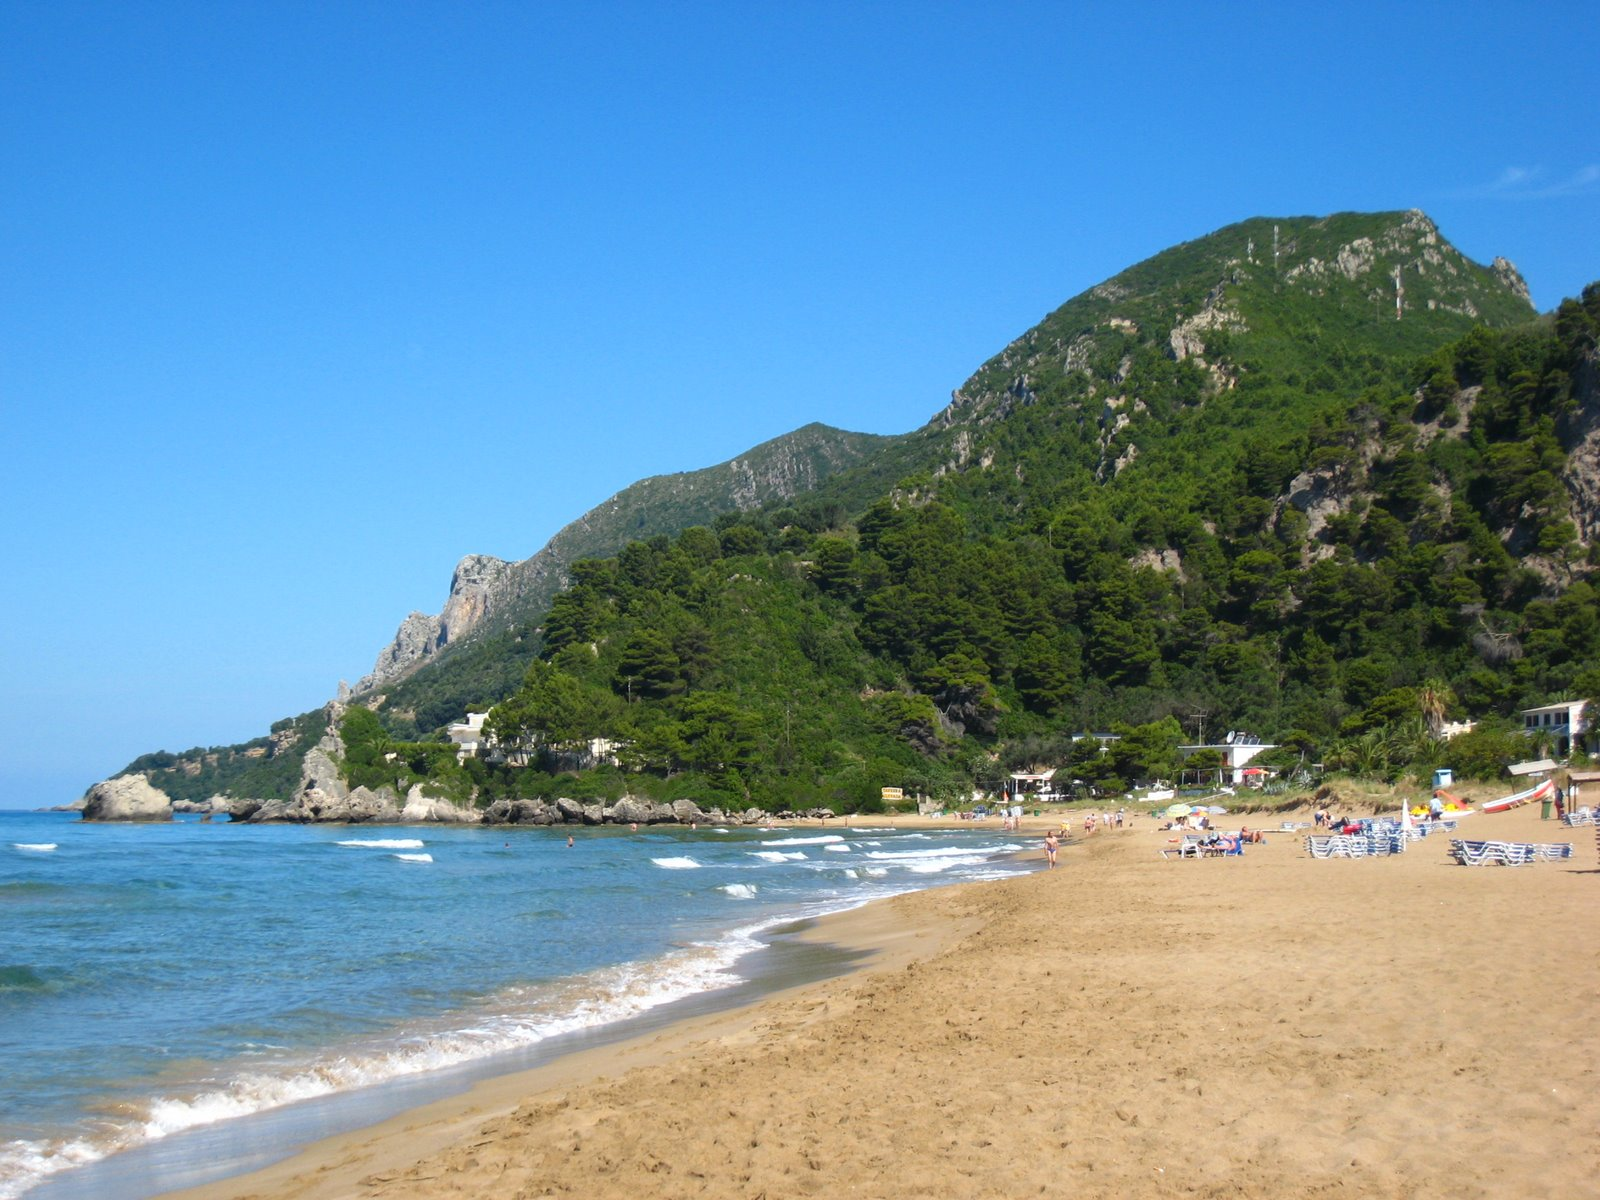 Beaches in Corfu, Corfu, Greece, Glyfada coastal view